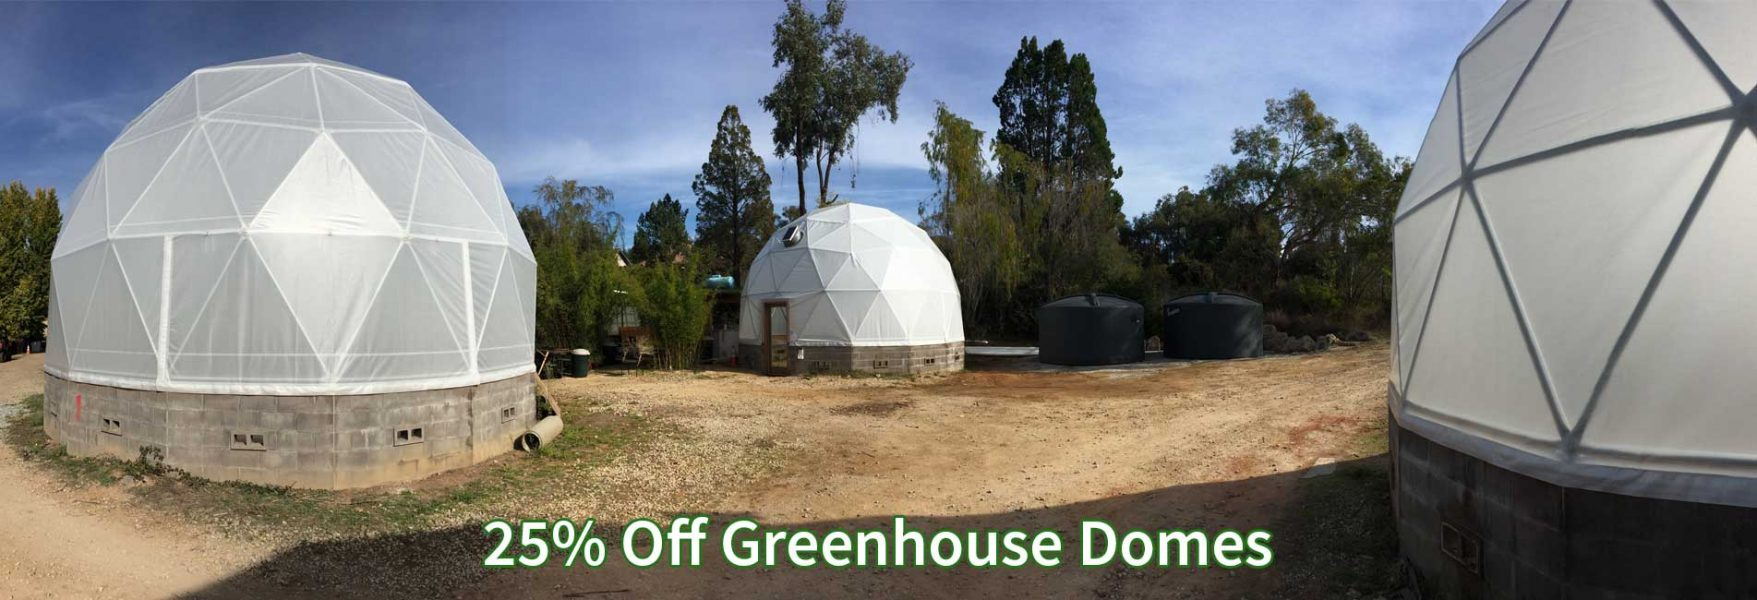 Greenhouse Domes Sale